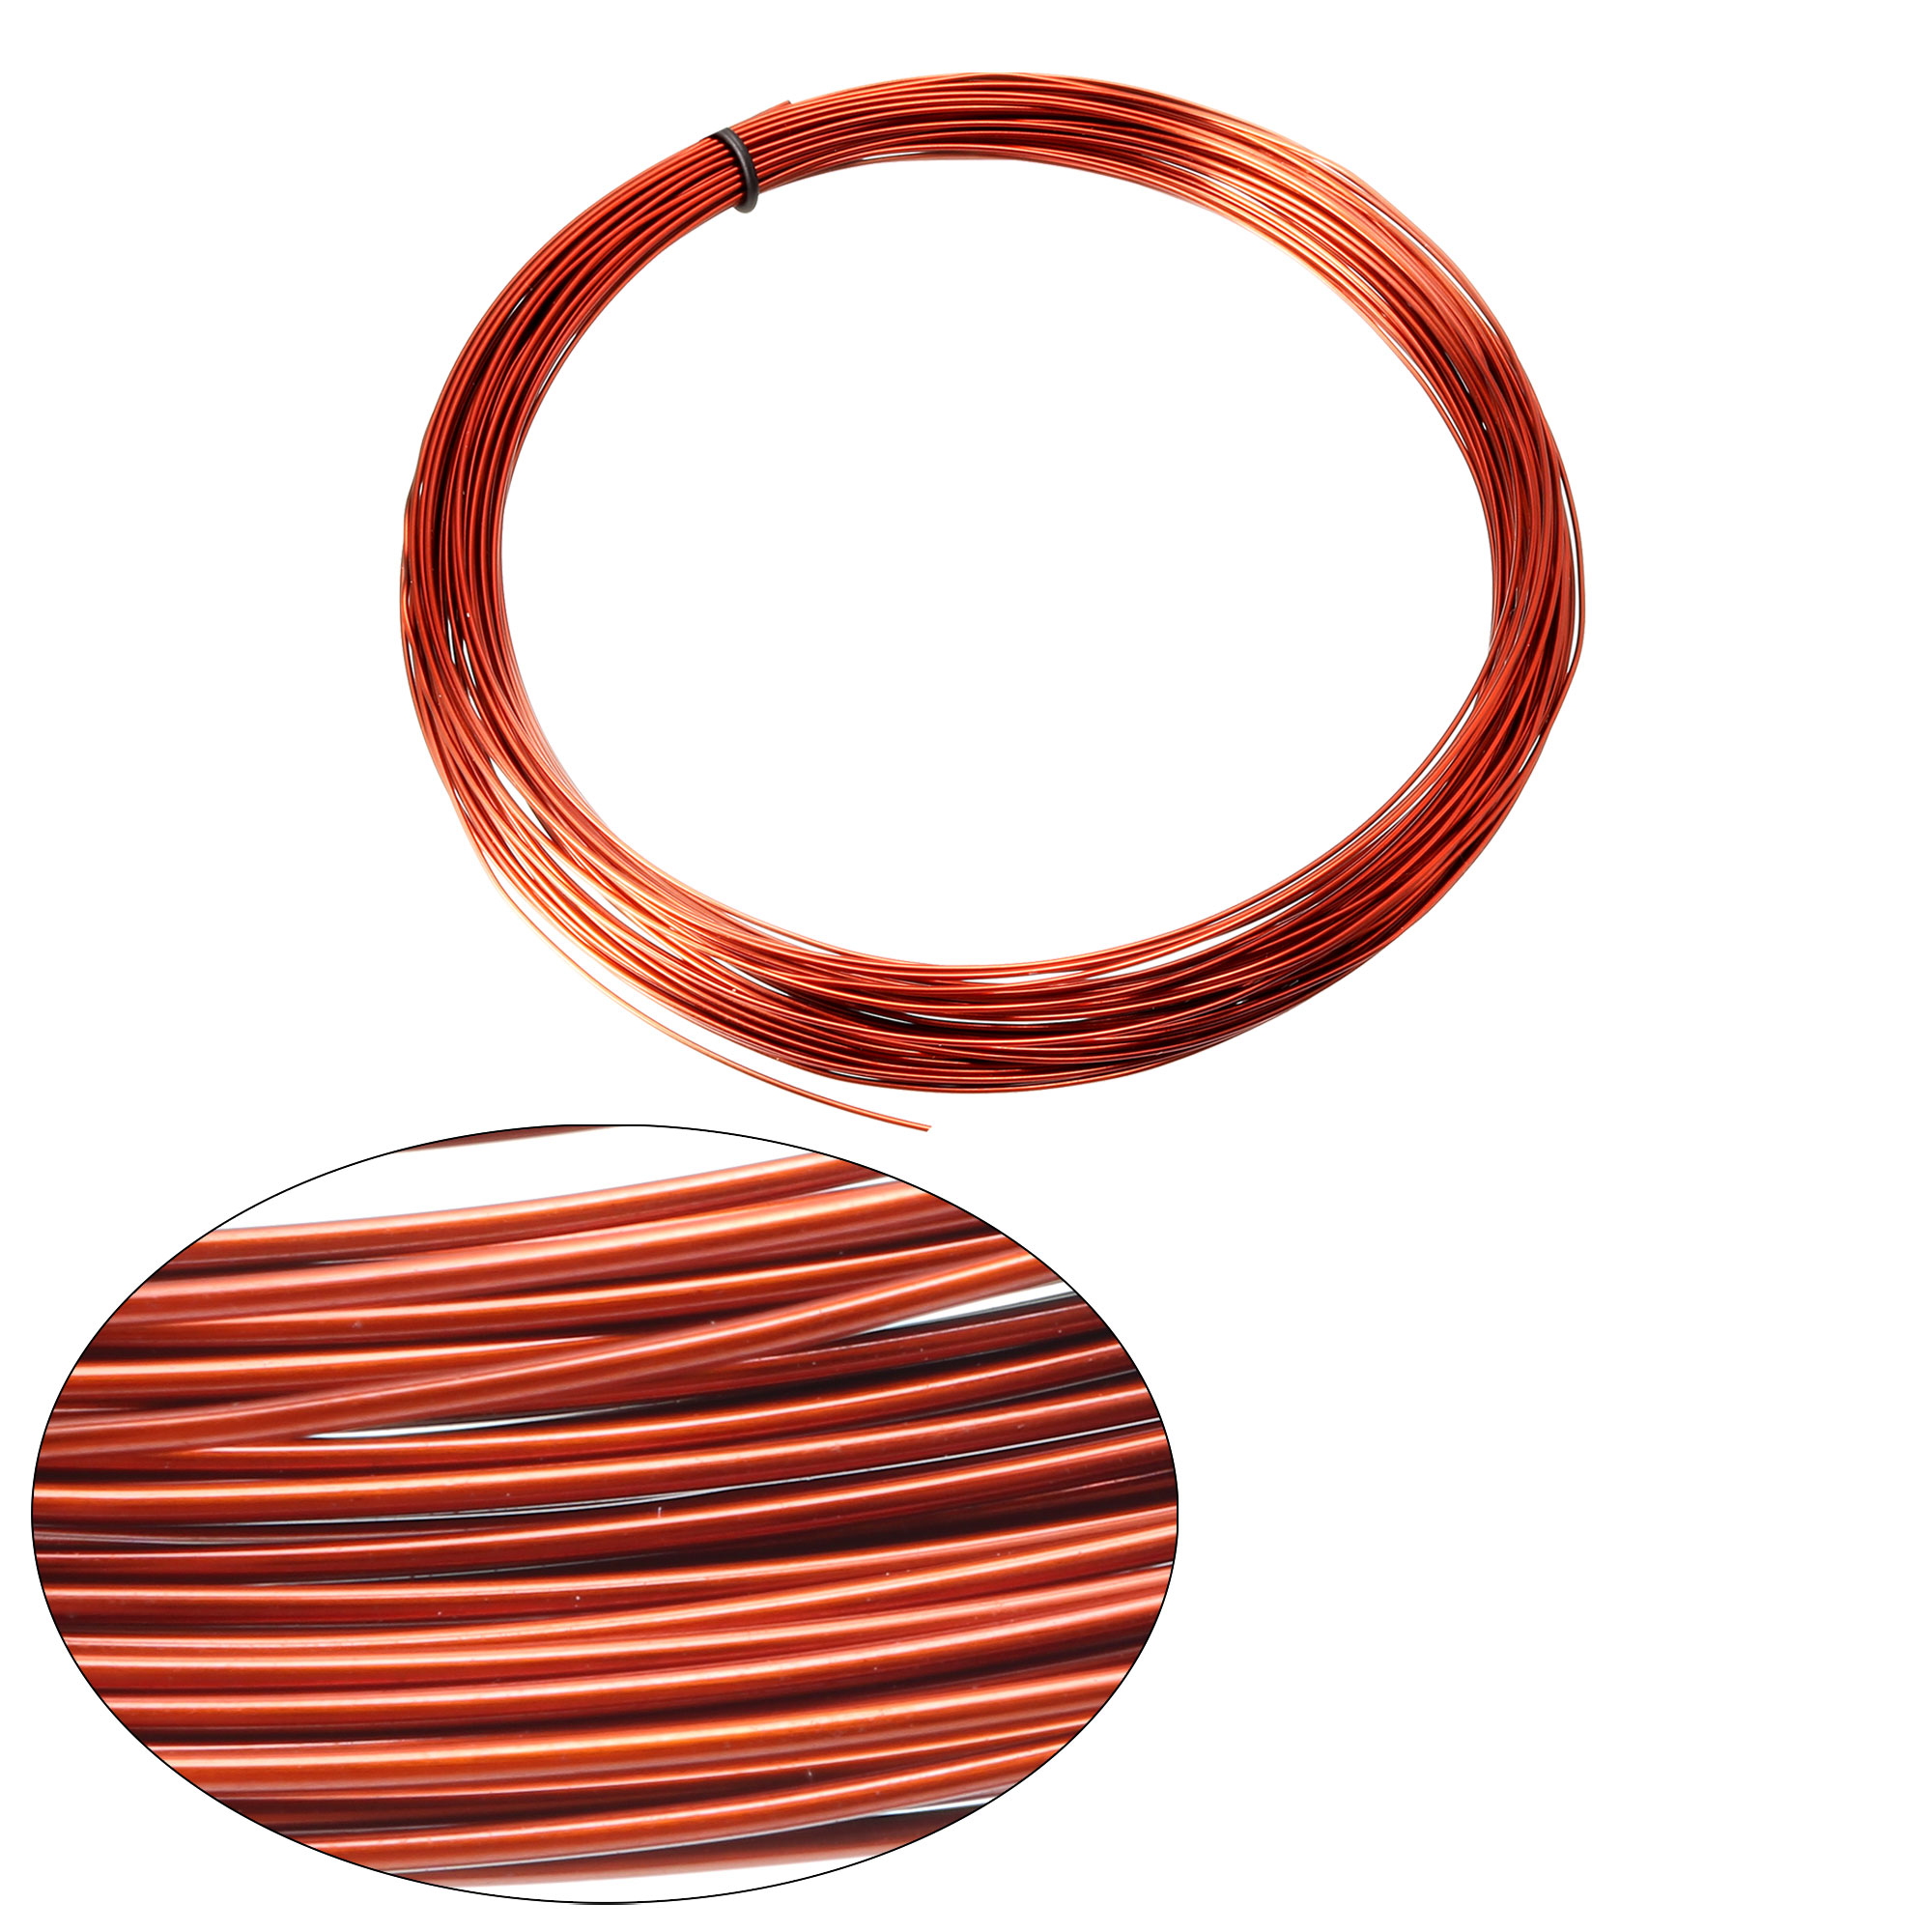 0.85mm Dia Magnet Wire Enameled Copper Wire Winding Coil 49' Length Widely Used for Transformers Inductors - image 1 de 3